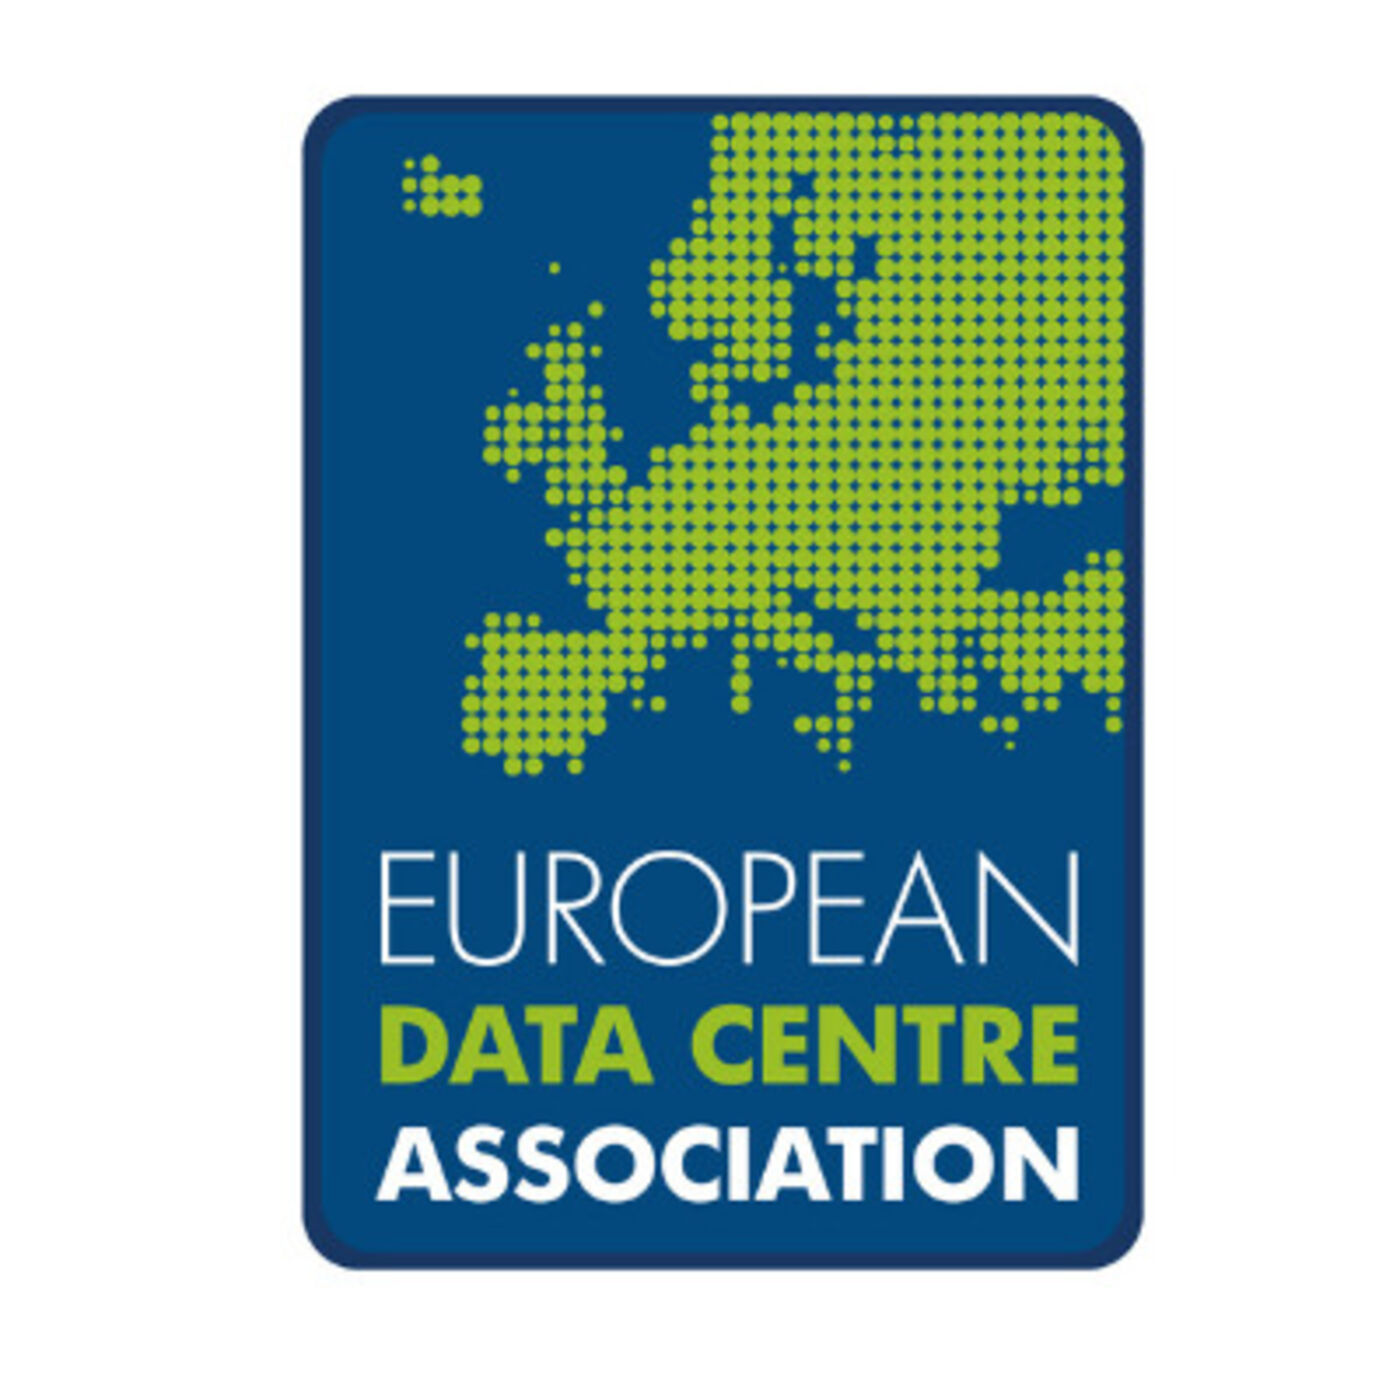 Alex Rabbetts Discusses EUDCA's Mission and Latest European Data Center Trends With JSA TV